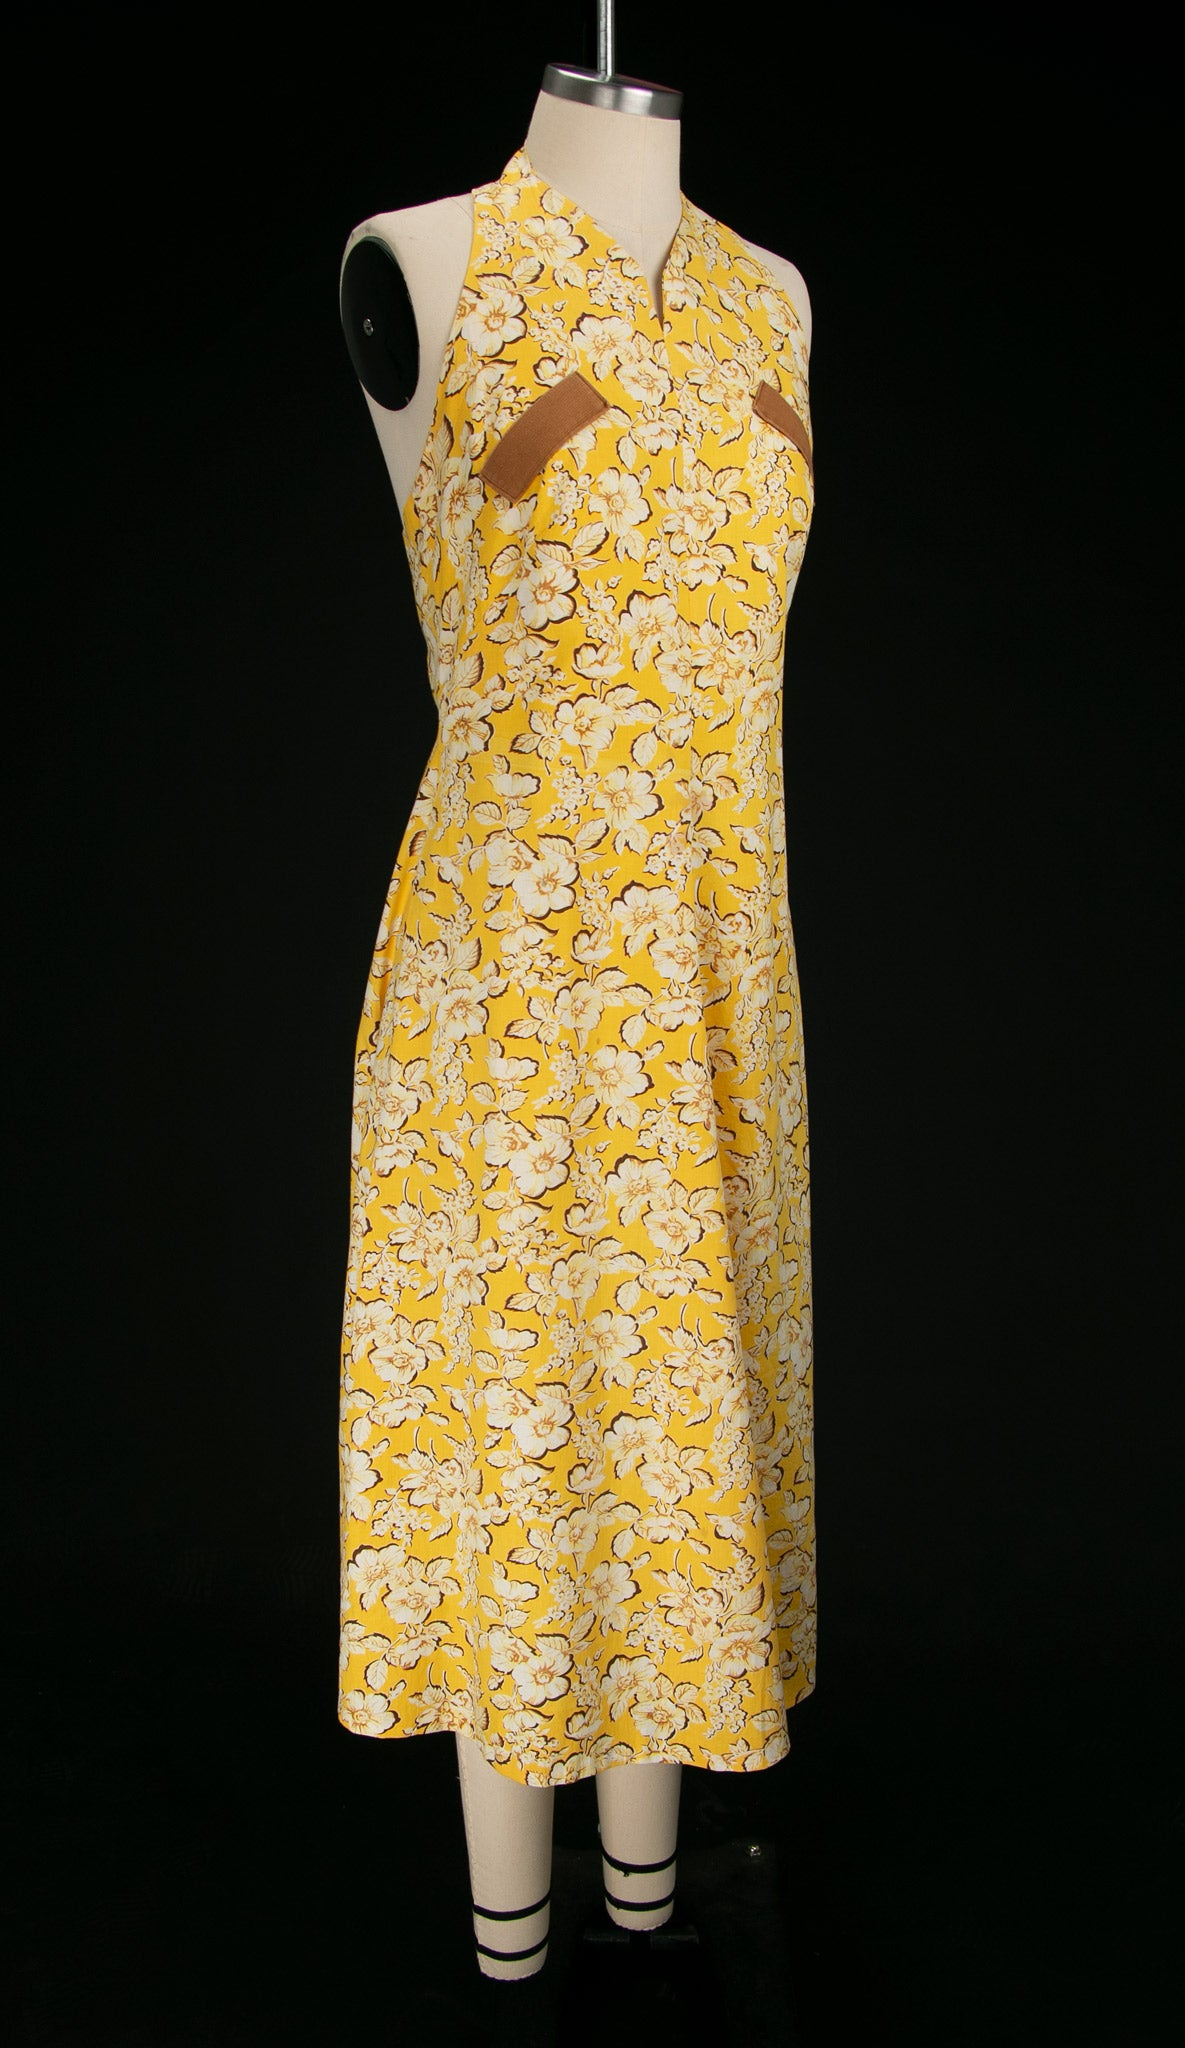 Vintage 1930's - 40's Yellow Floral Halter Dress